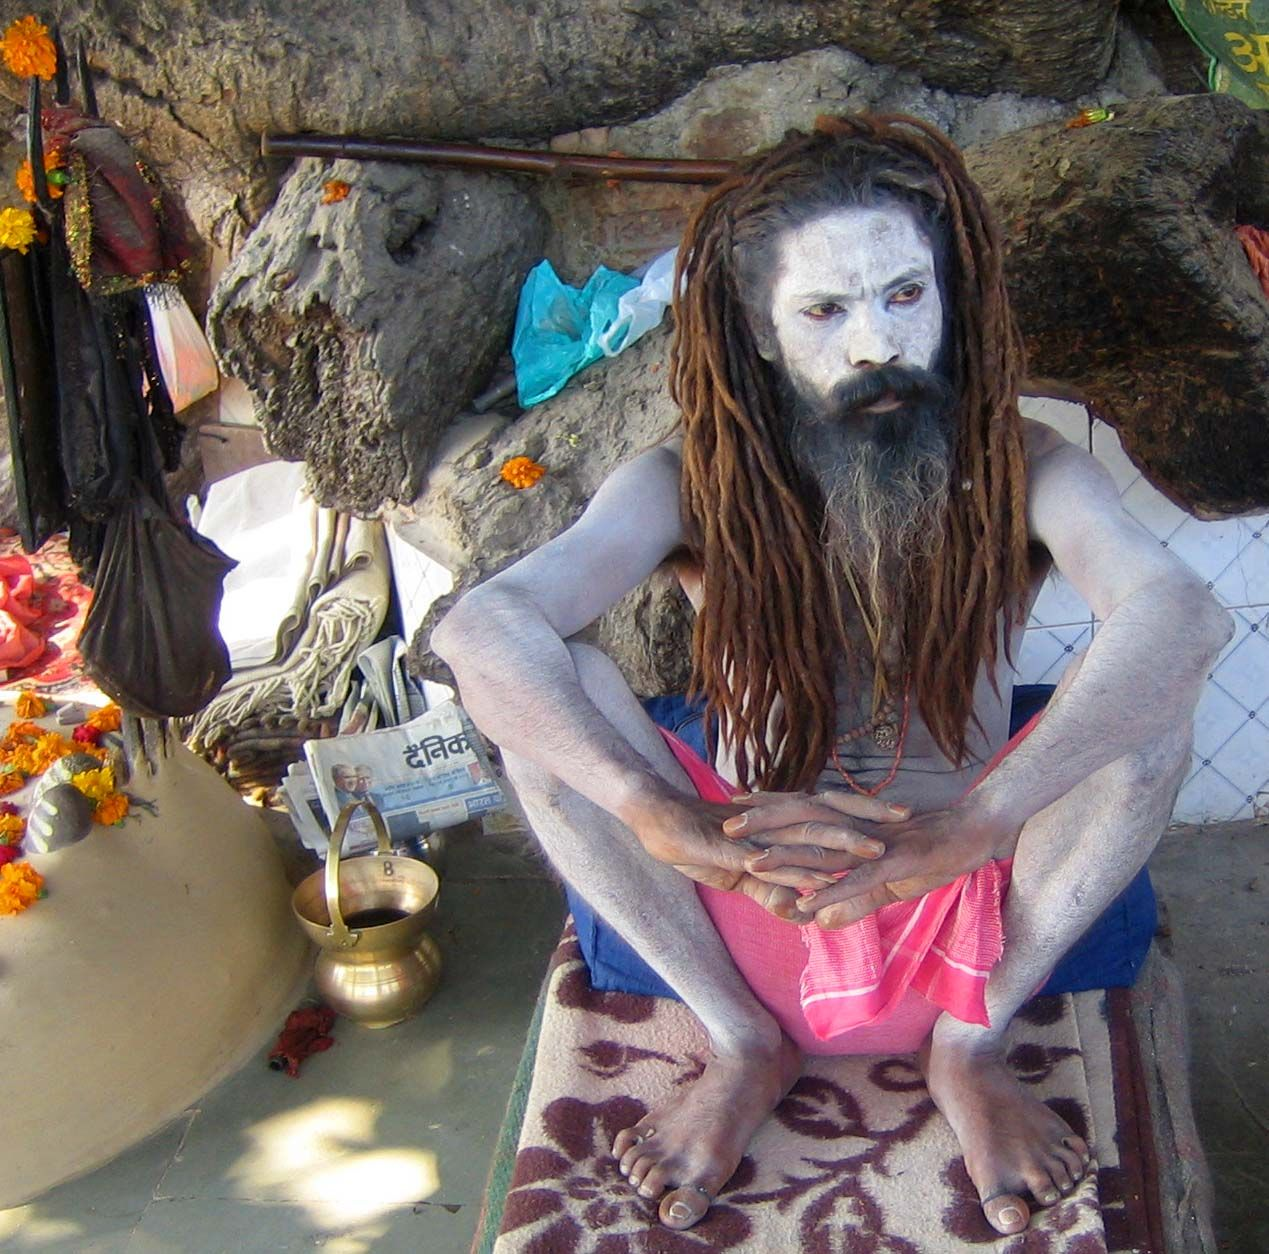 A sadhu in india with his hair in jata dreadlocks we are the a sadhu in india with his hair in jata dreadlocks biocorpaavc Image collections